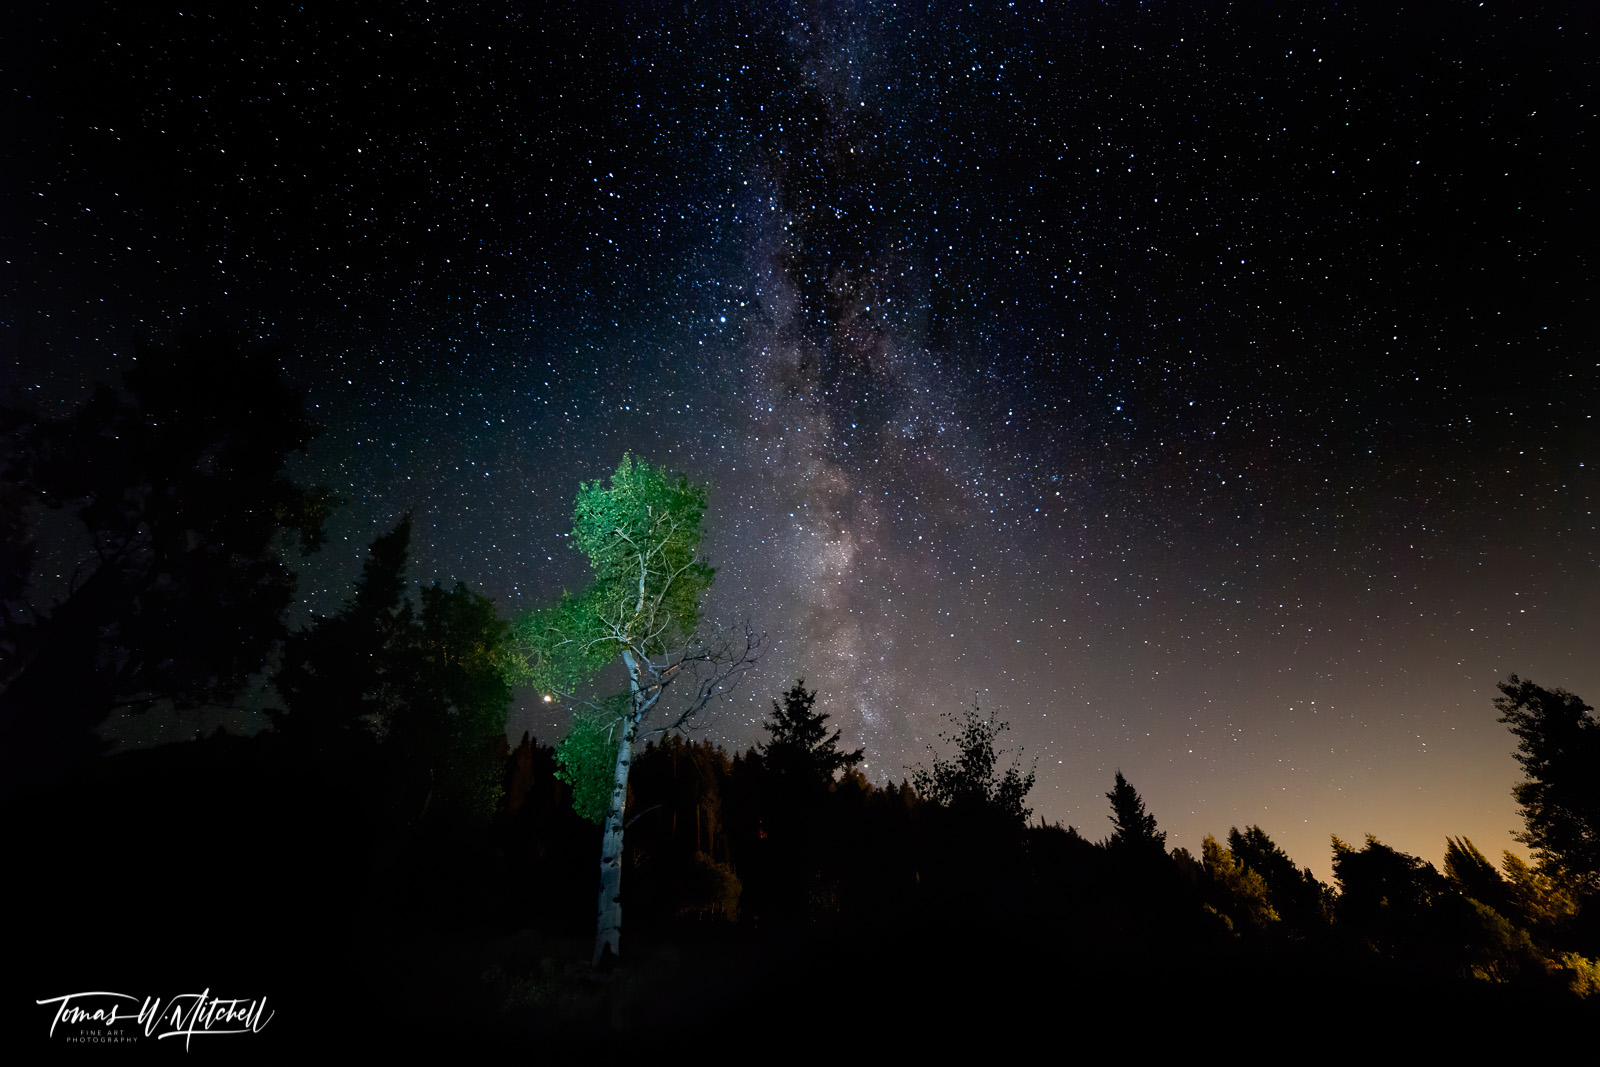 limited edition, fine art, prints, summer, oakley, utah, mountains, sky, stars, trees, milky way, photograph, aspen, night,, photo